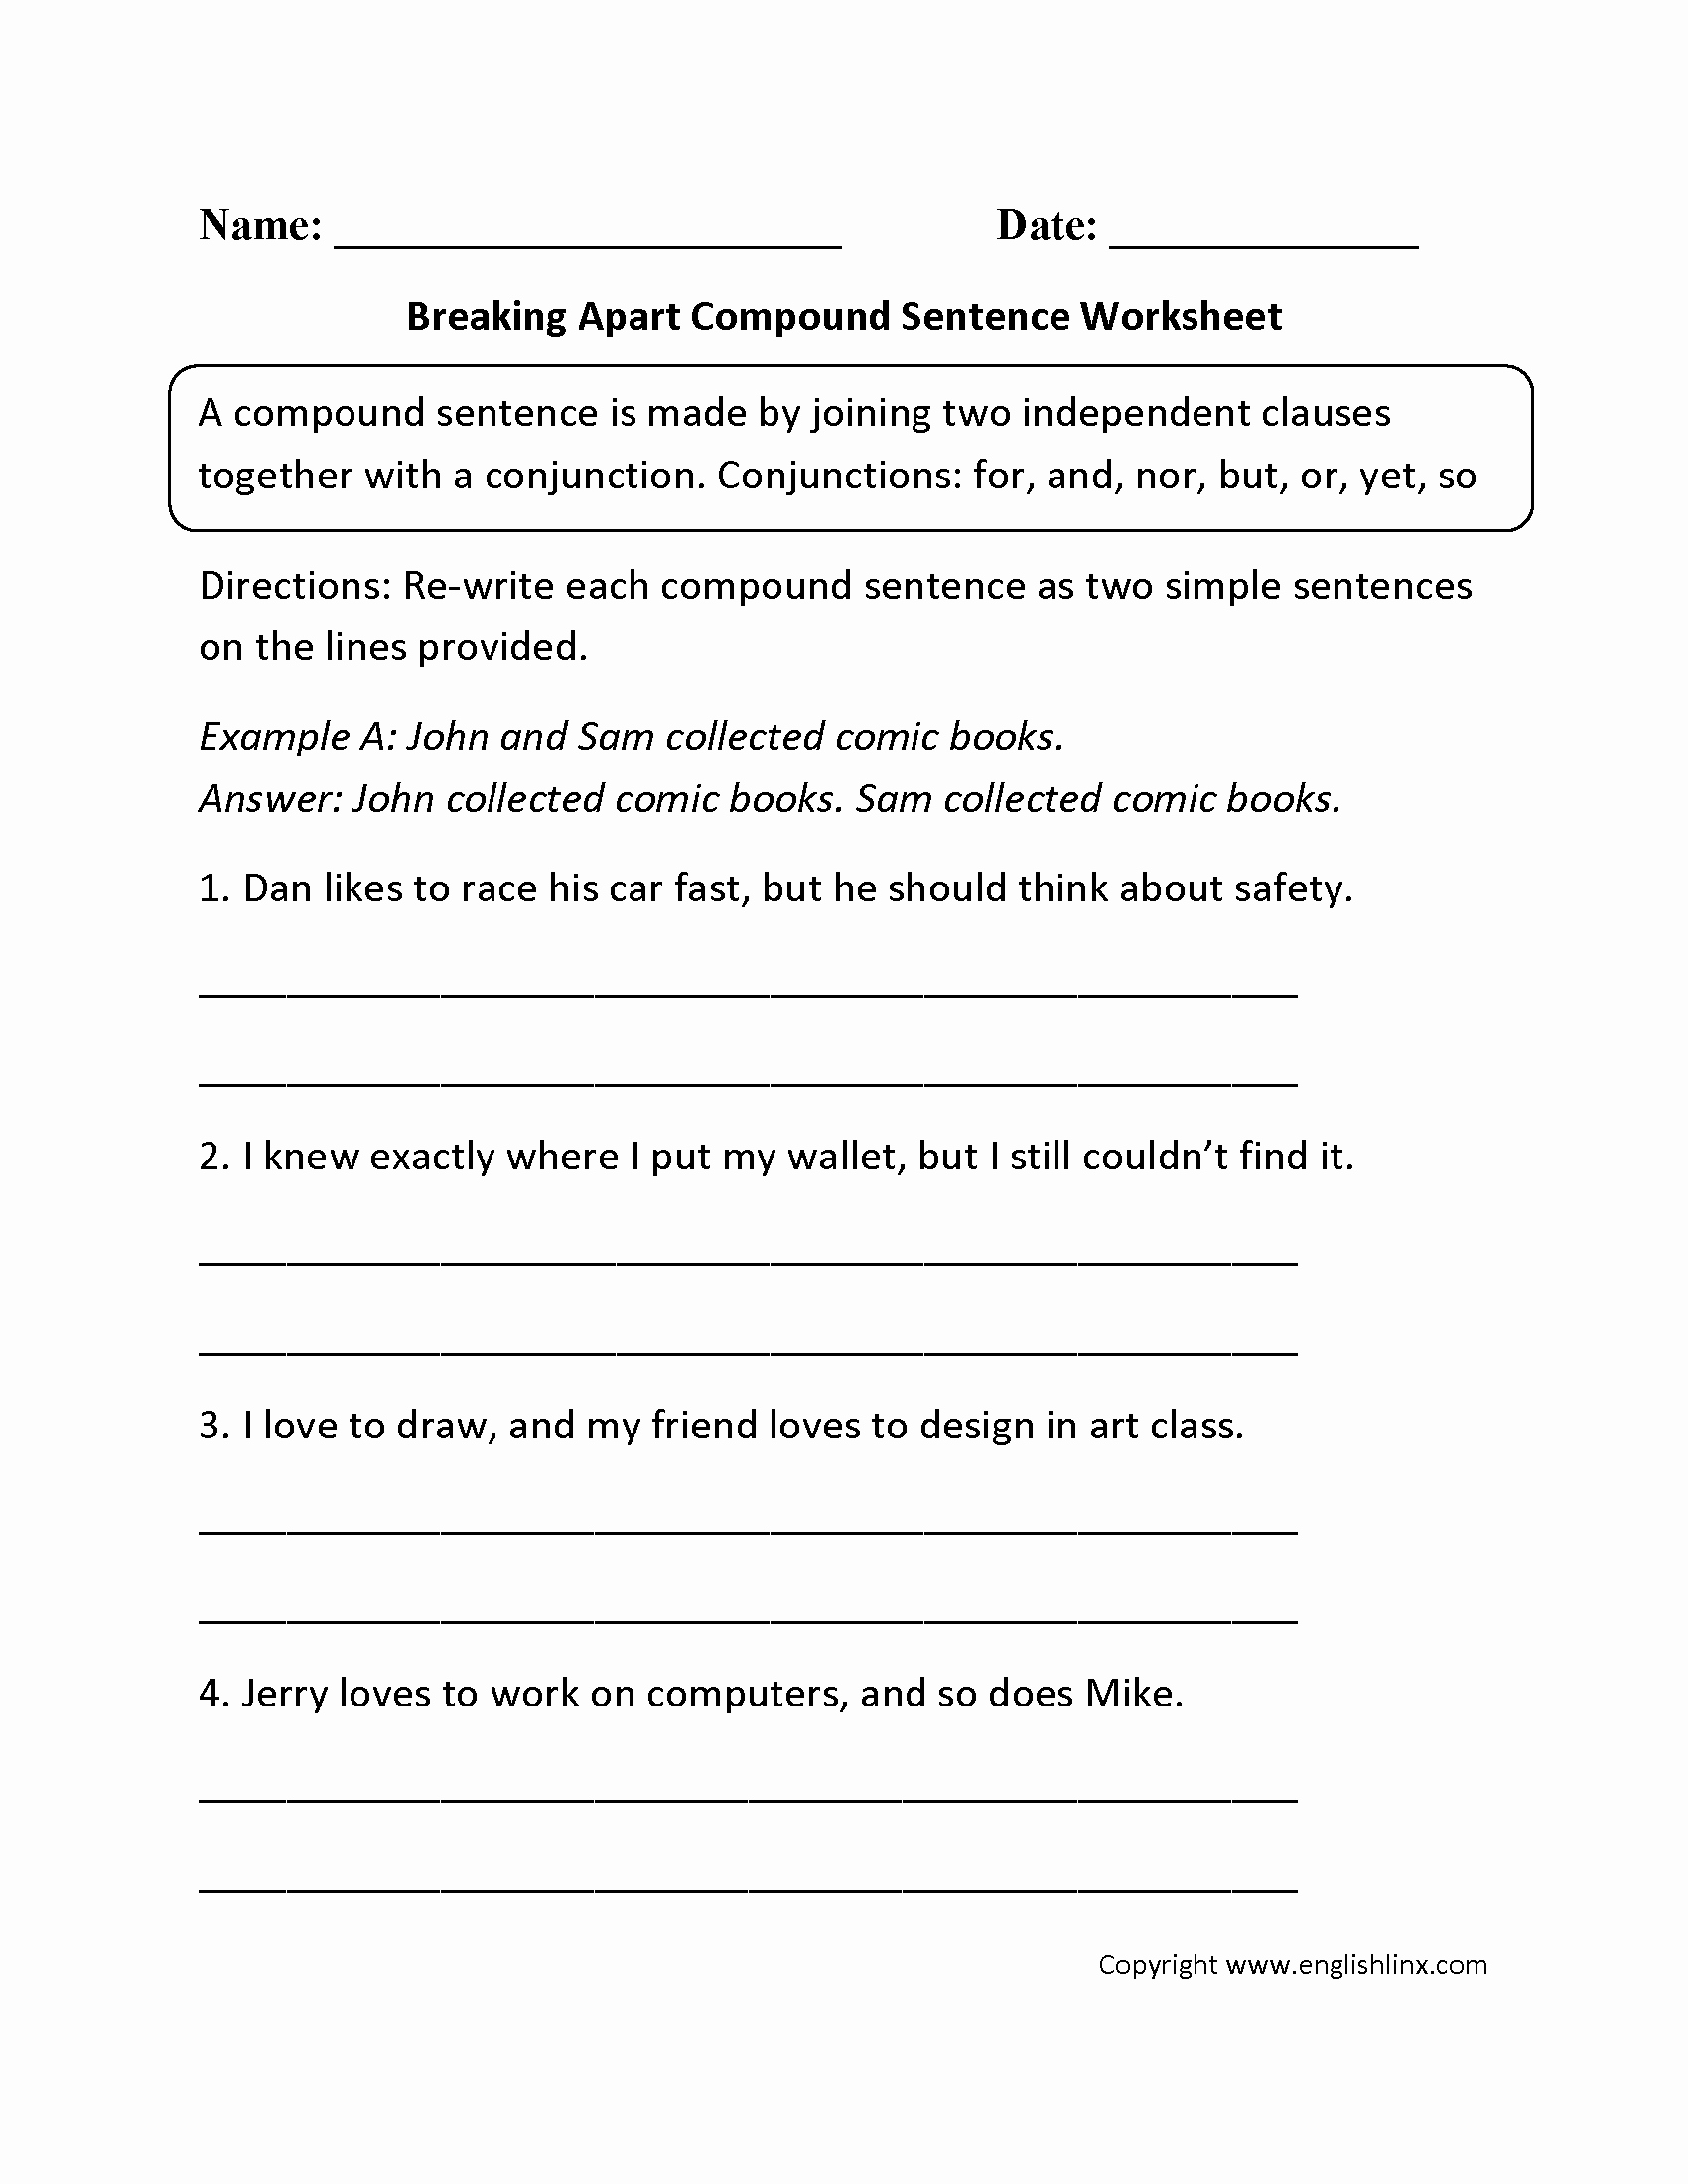 Complex Sentence Worksheets 4th Grade Luxury 32 Pound Sentences Worksheet 4th Grade Ekerekizul